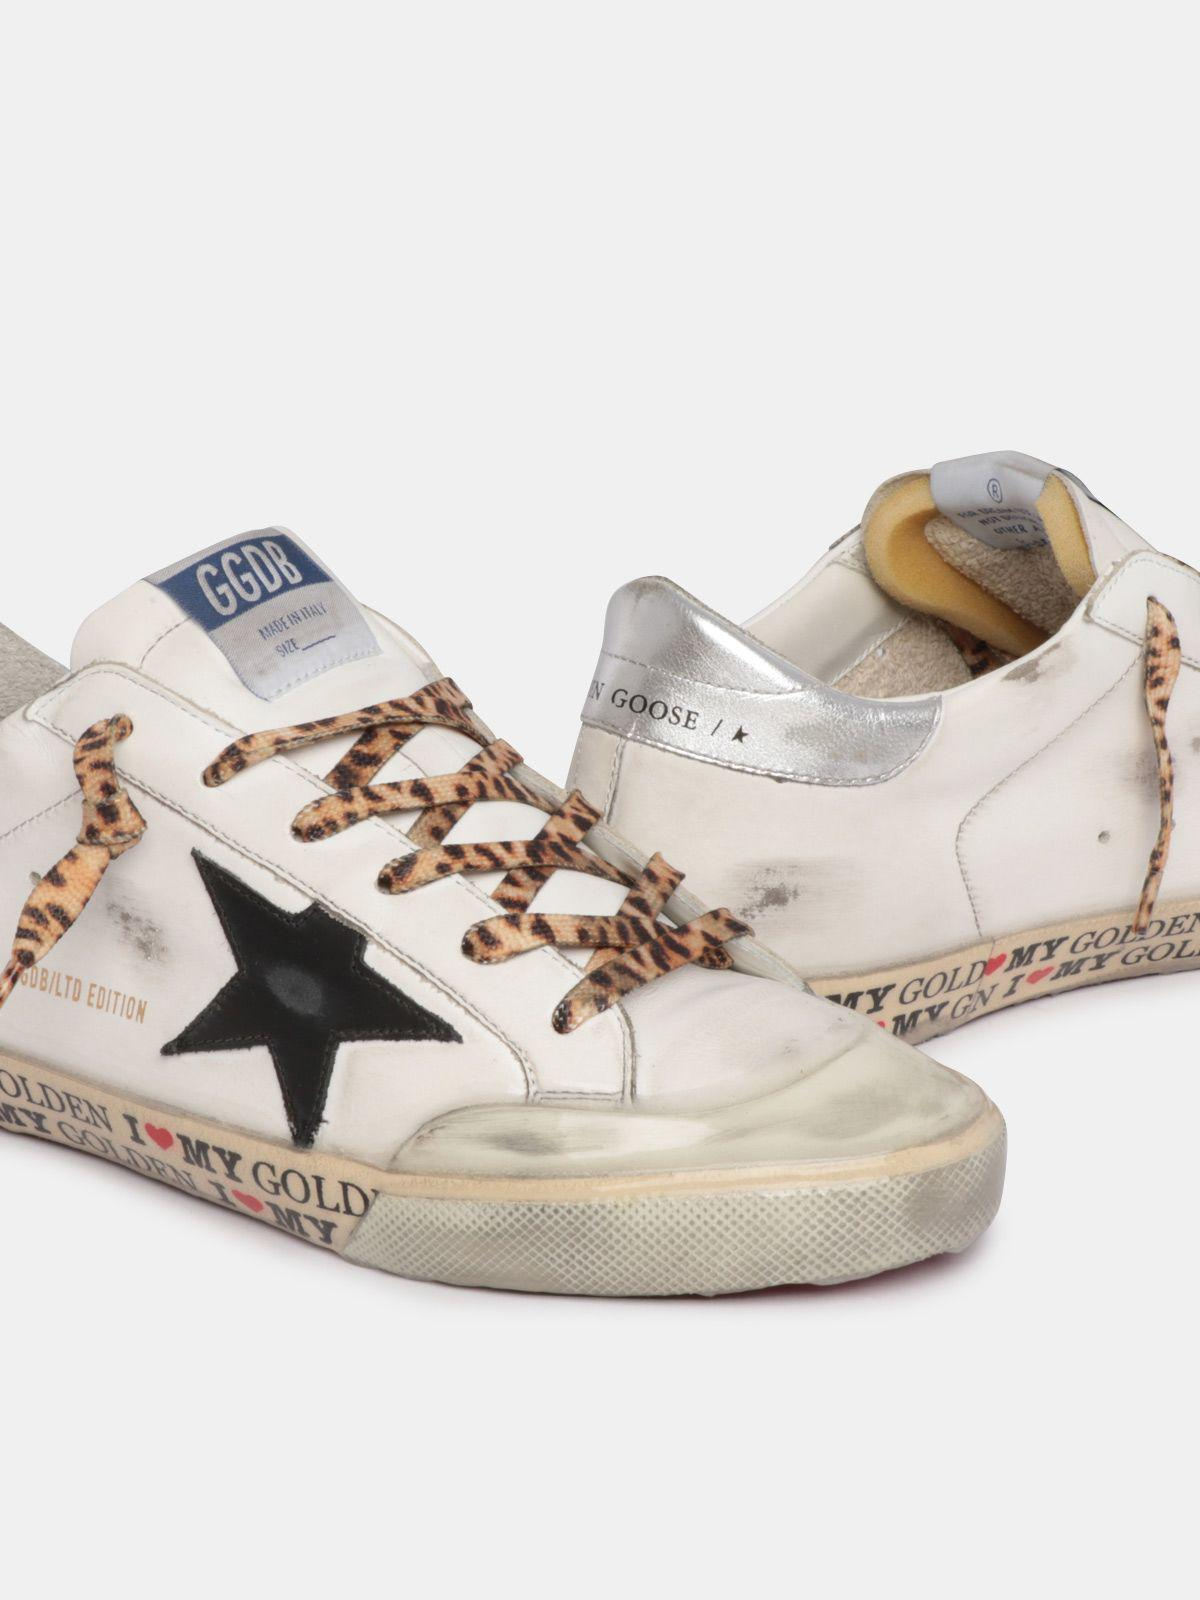 LTD Super-Star sneakers with decorations on the foxing and leopard-print laces 3